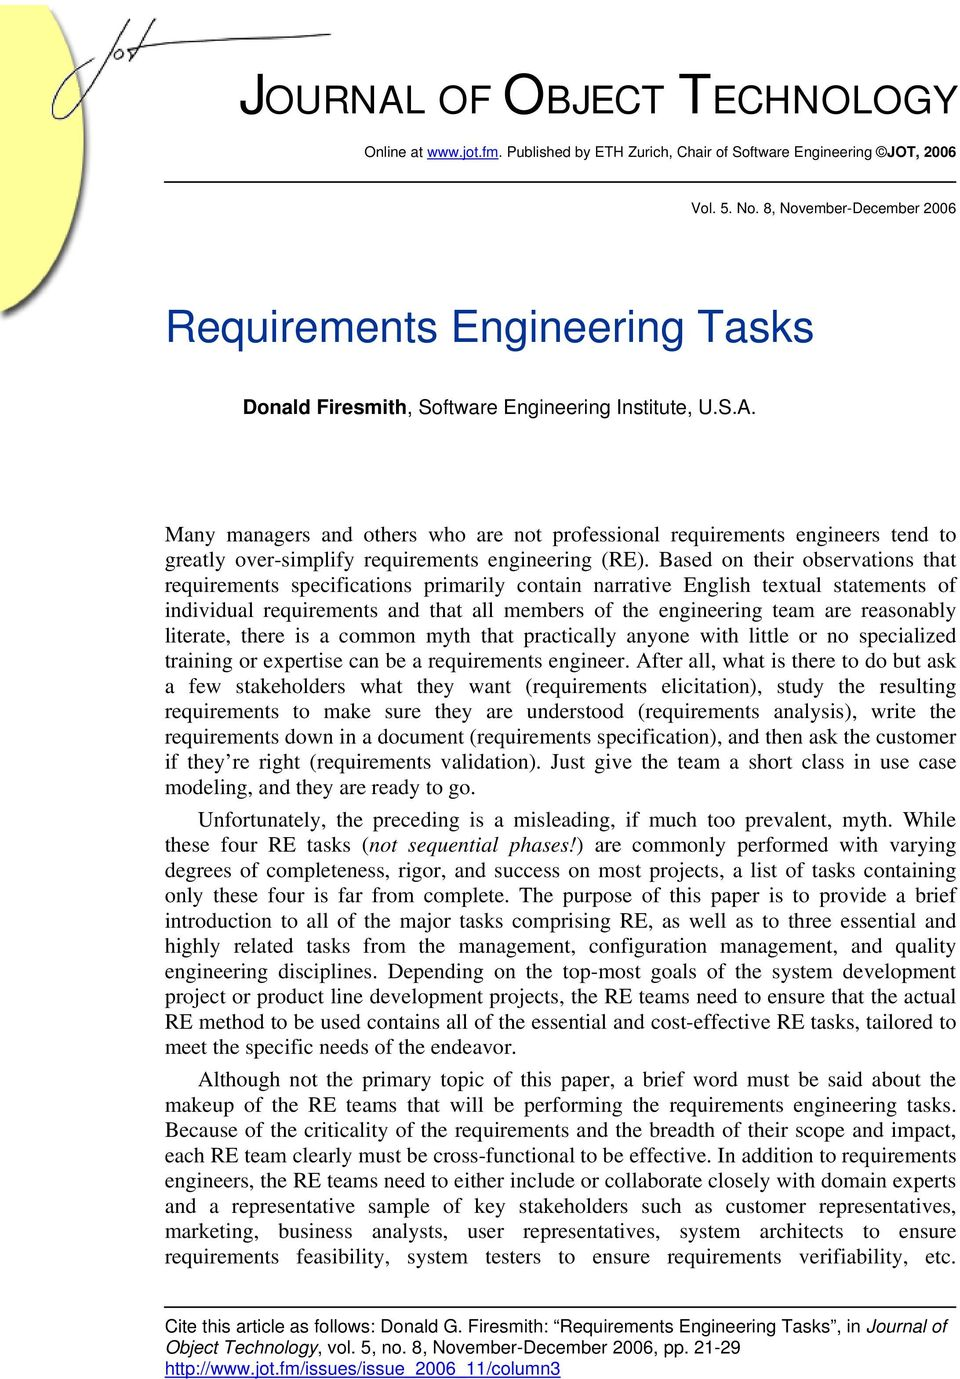 Many managers and others who are not professional requirements engineers tend to greatly over-simplify requirements engineering (RE).